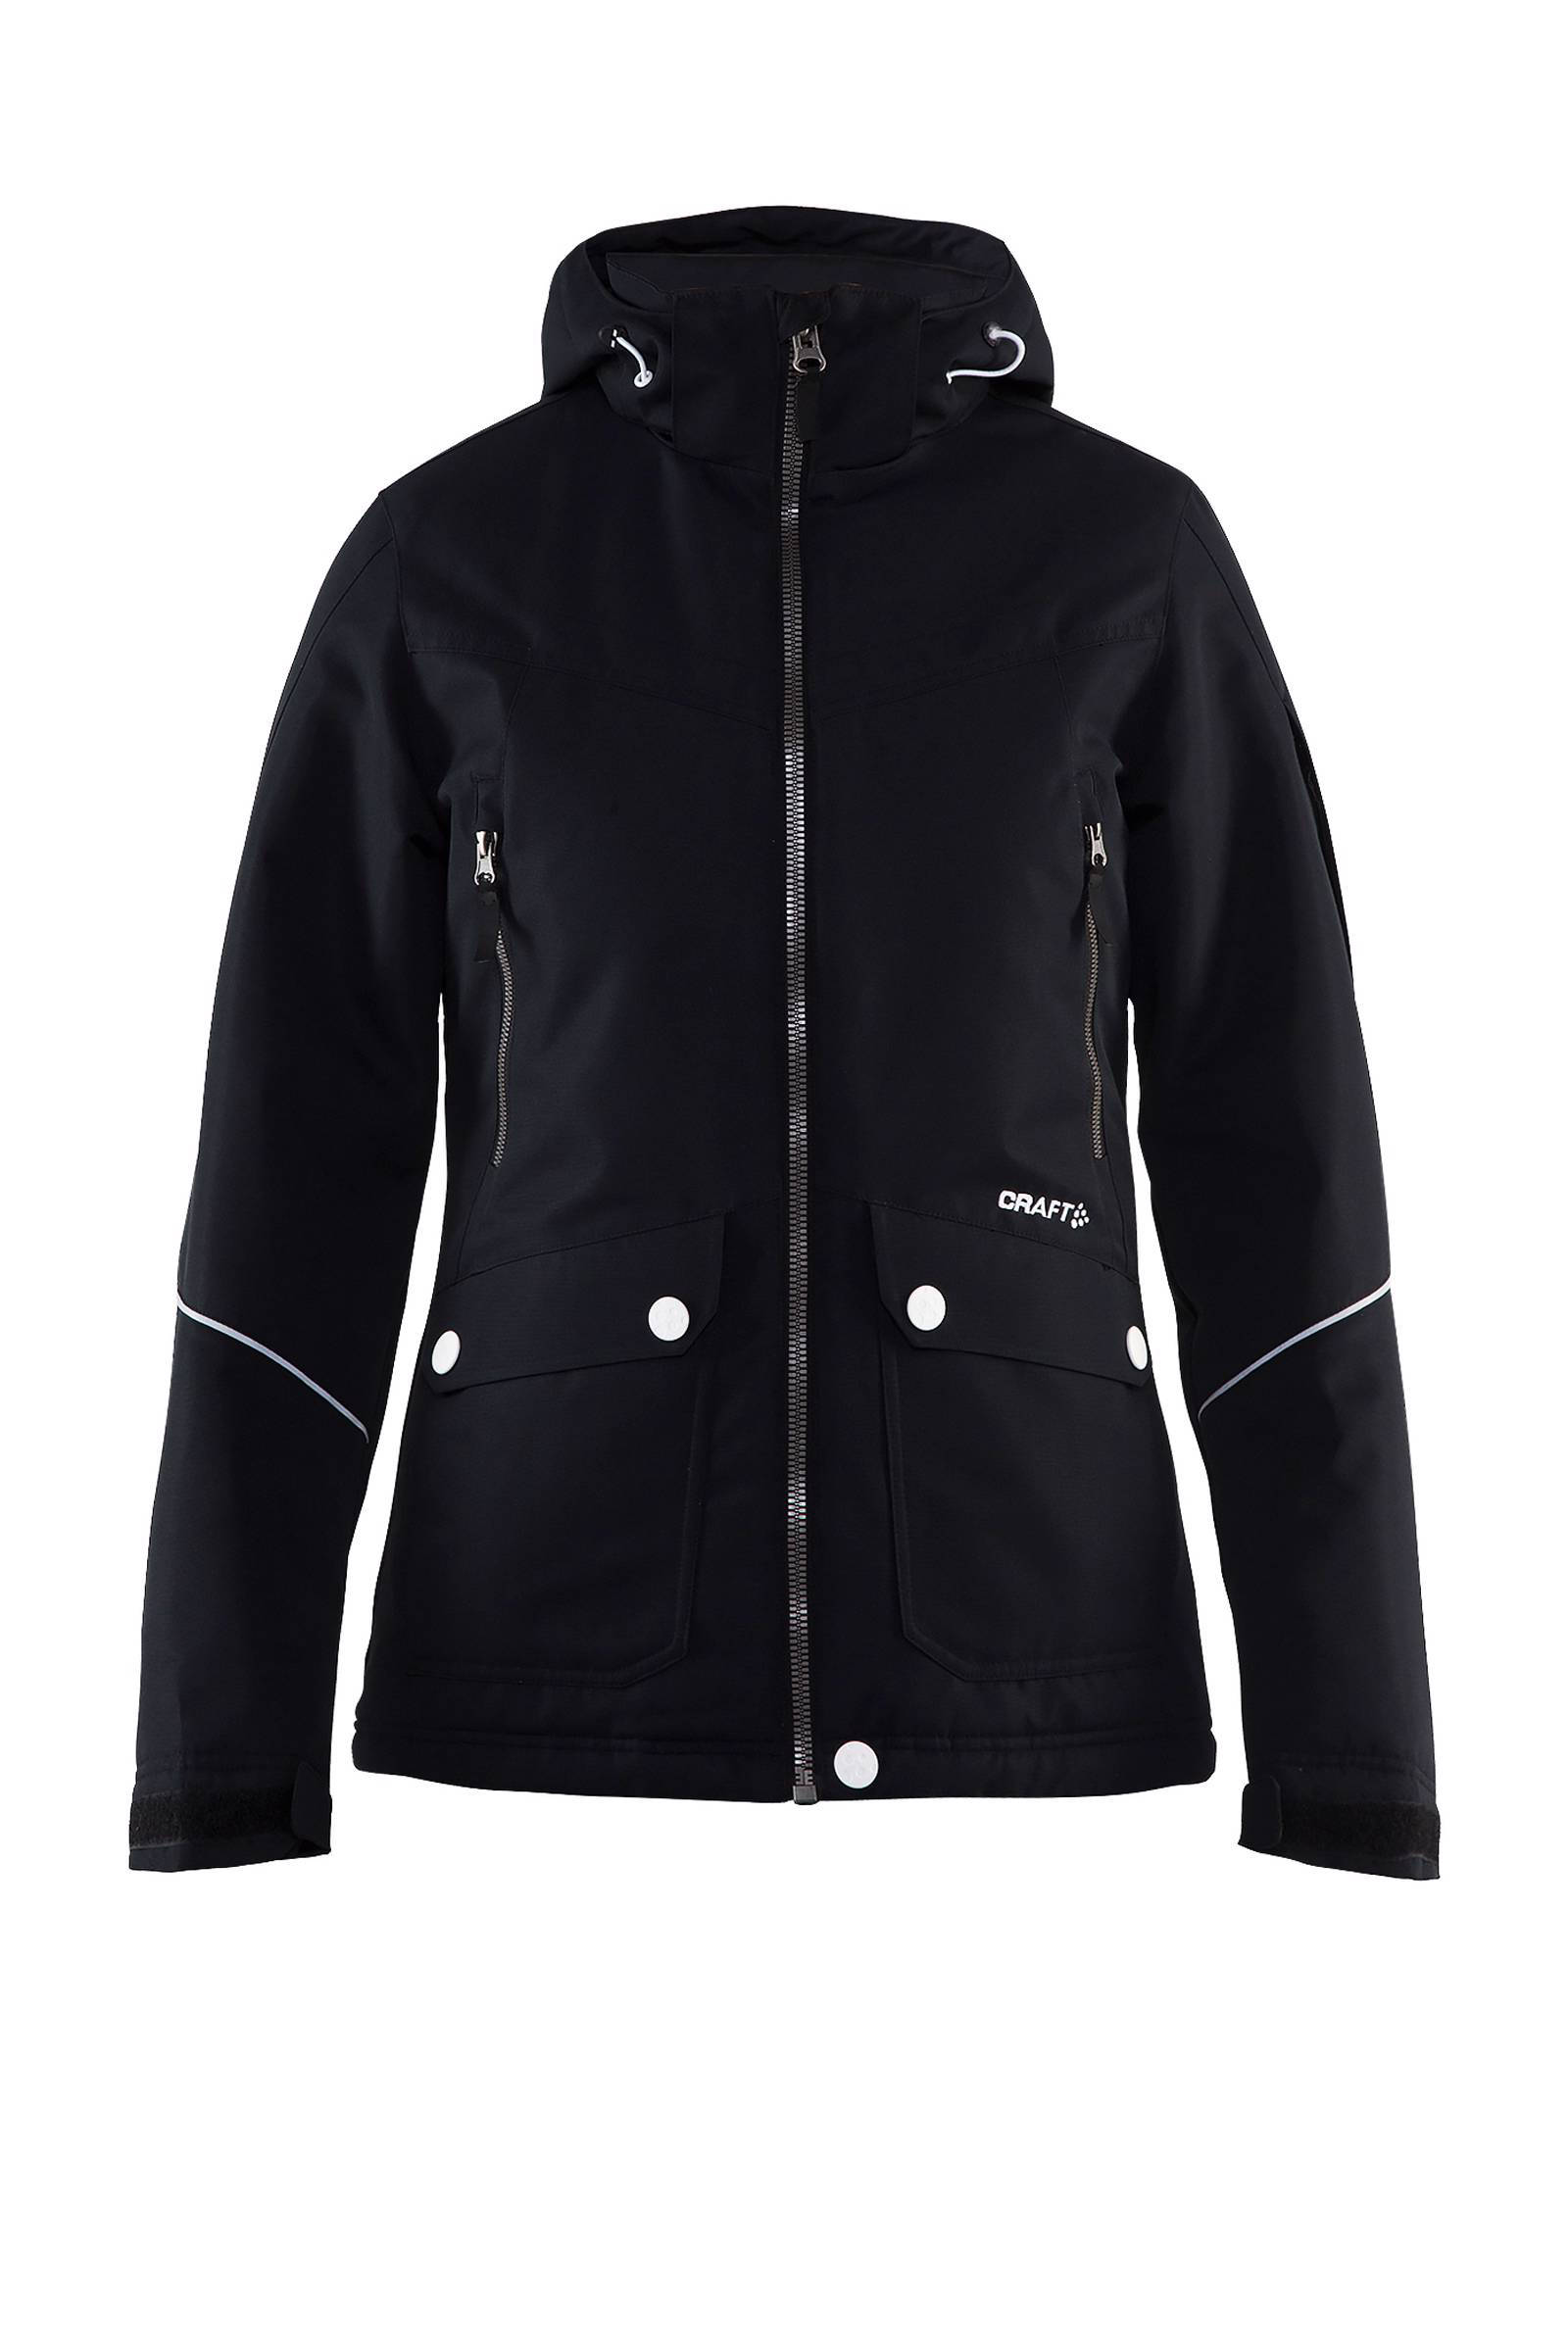 Craft sportjack utility jacket